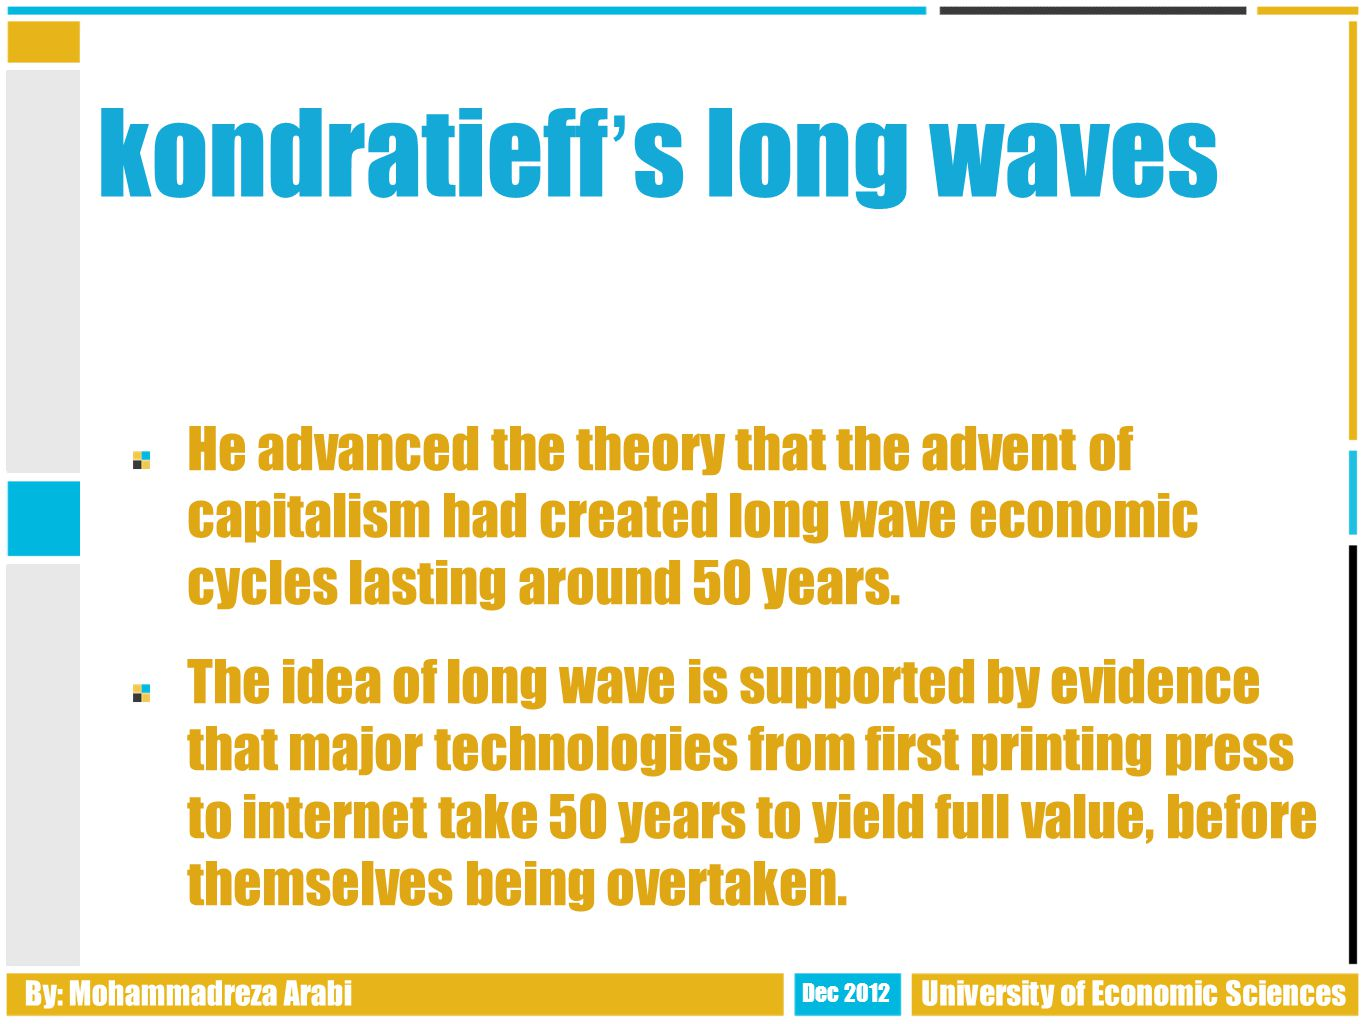 kondratieff ' s long waves He advanced the theory that the advent of capitalism had created long wave economic cycles lasting around 50 years.